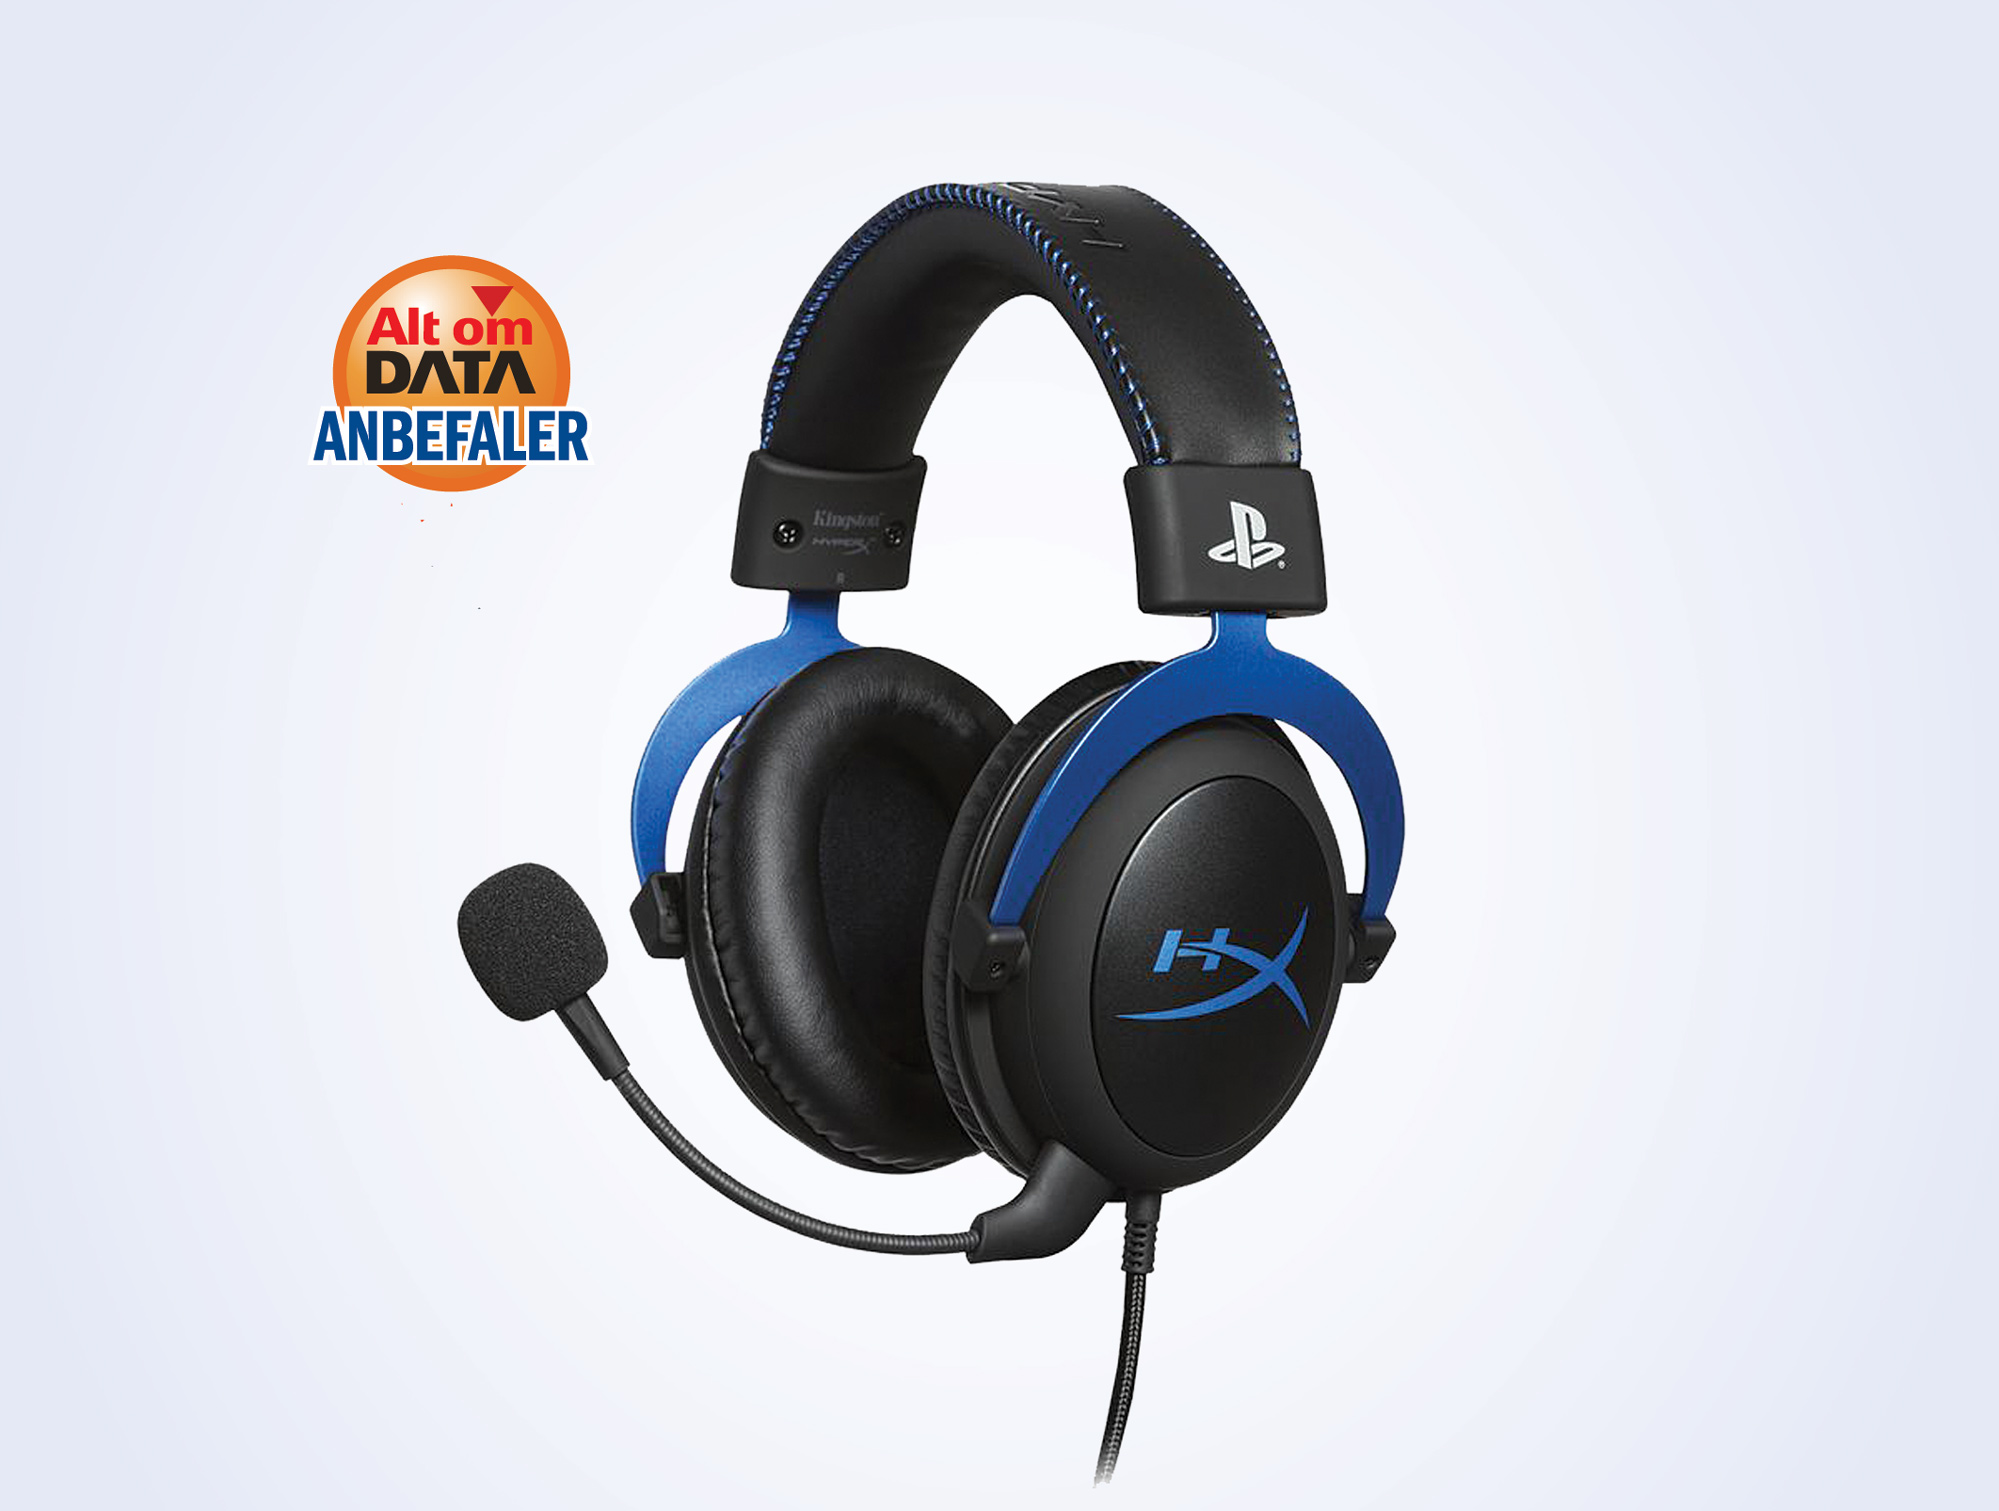 HyperX Cloud PS4 [TEST]: HyperX gamingheadset nu i udgave til PS4